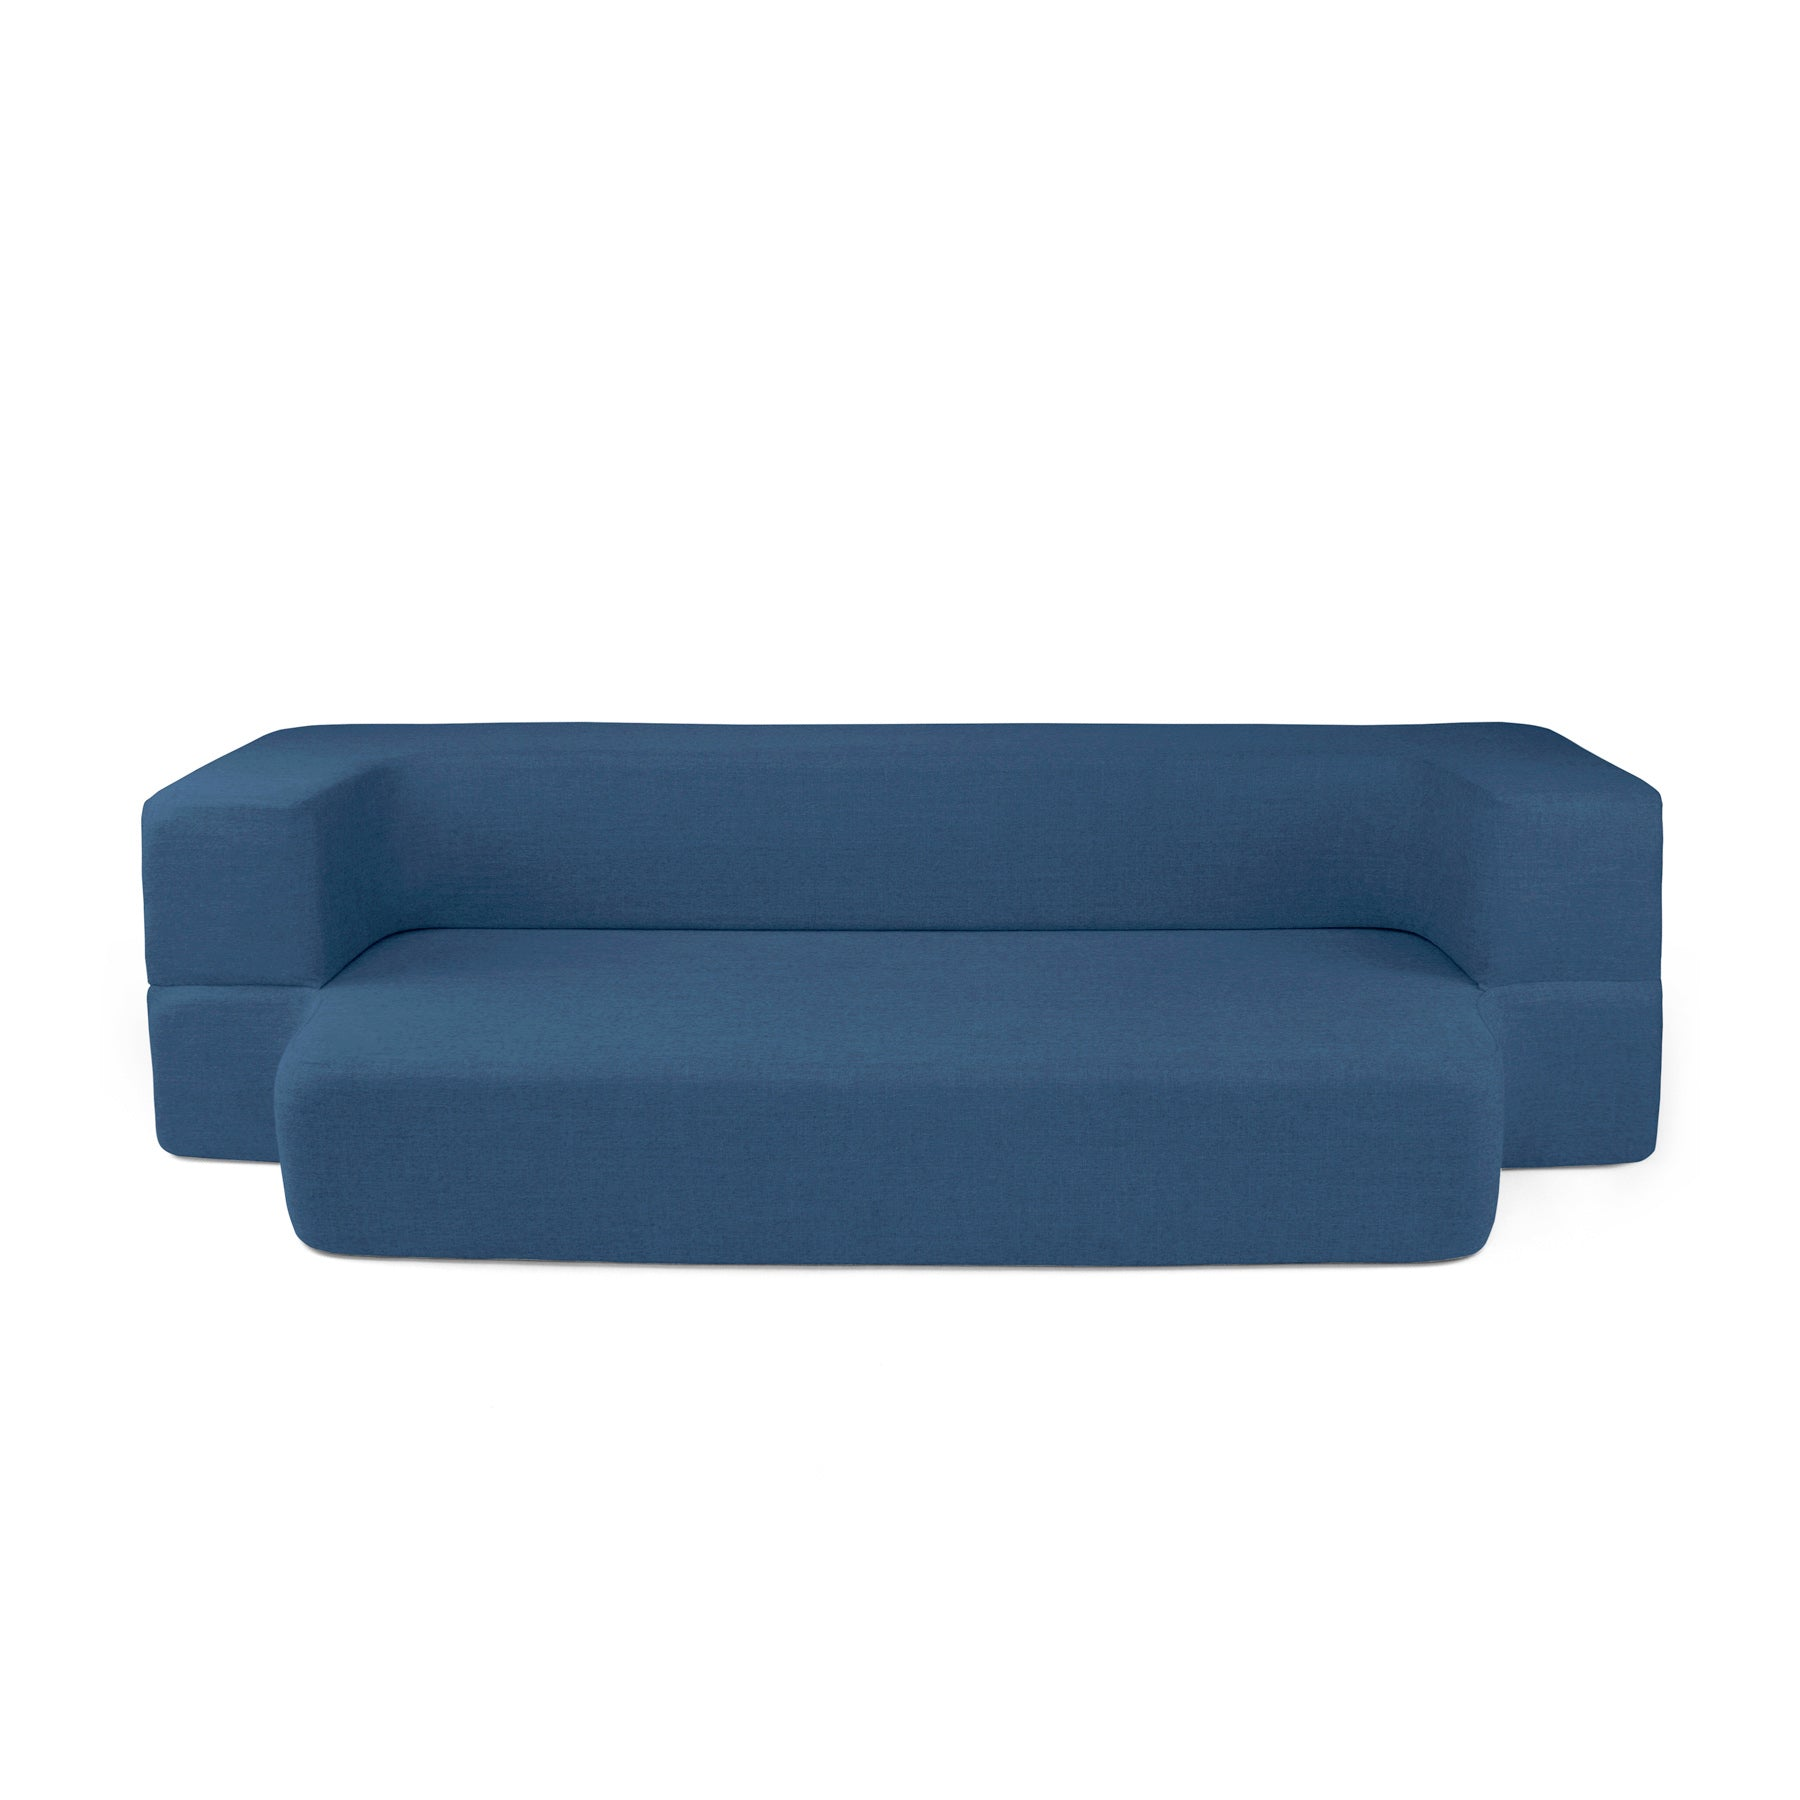 Blue Couchbed Memory Foam Mattress Meets Comfy Couch